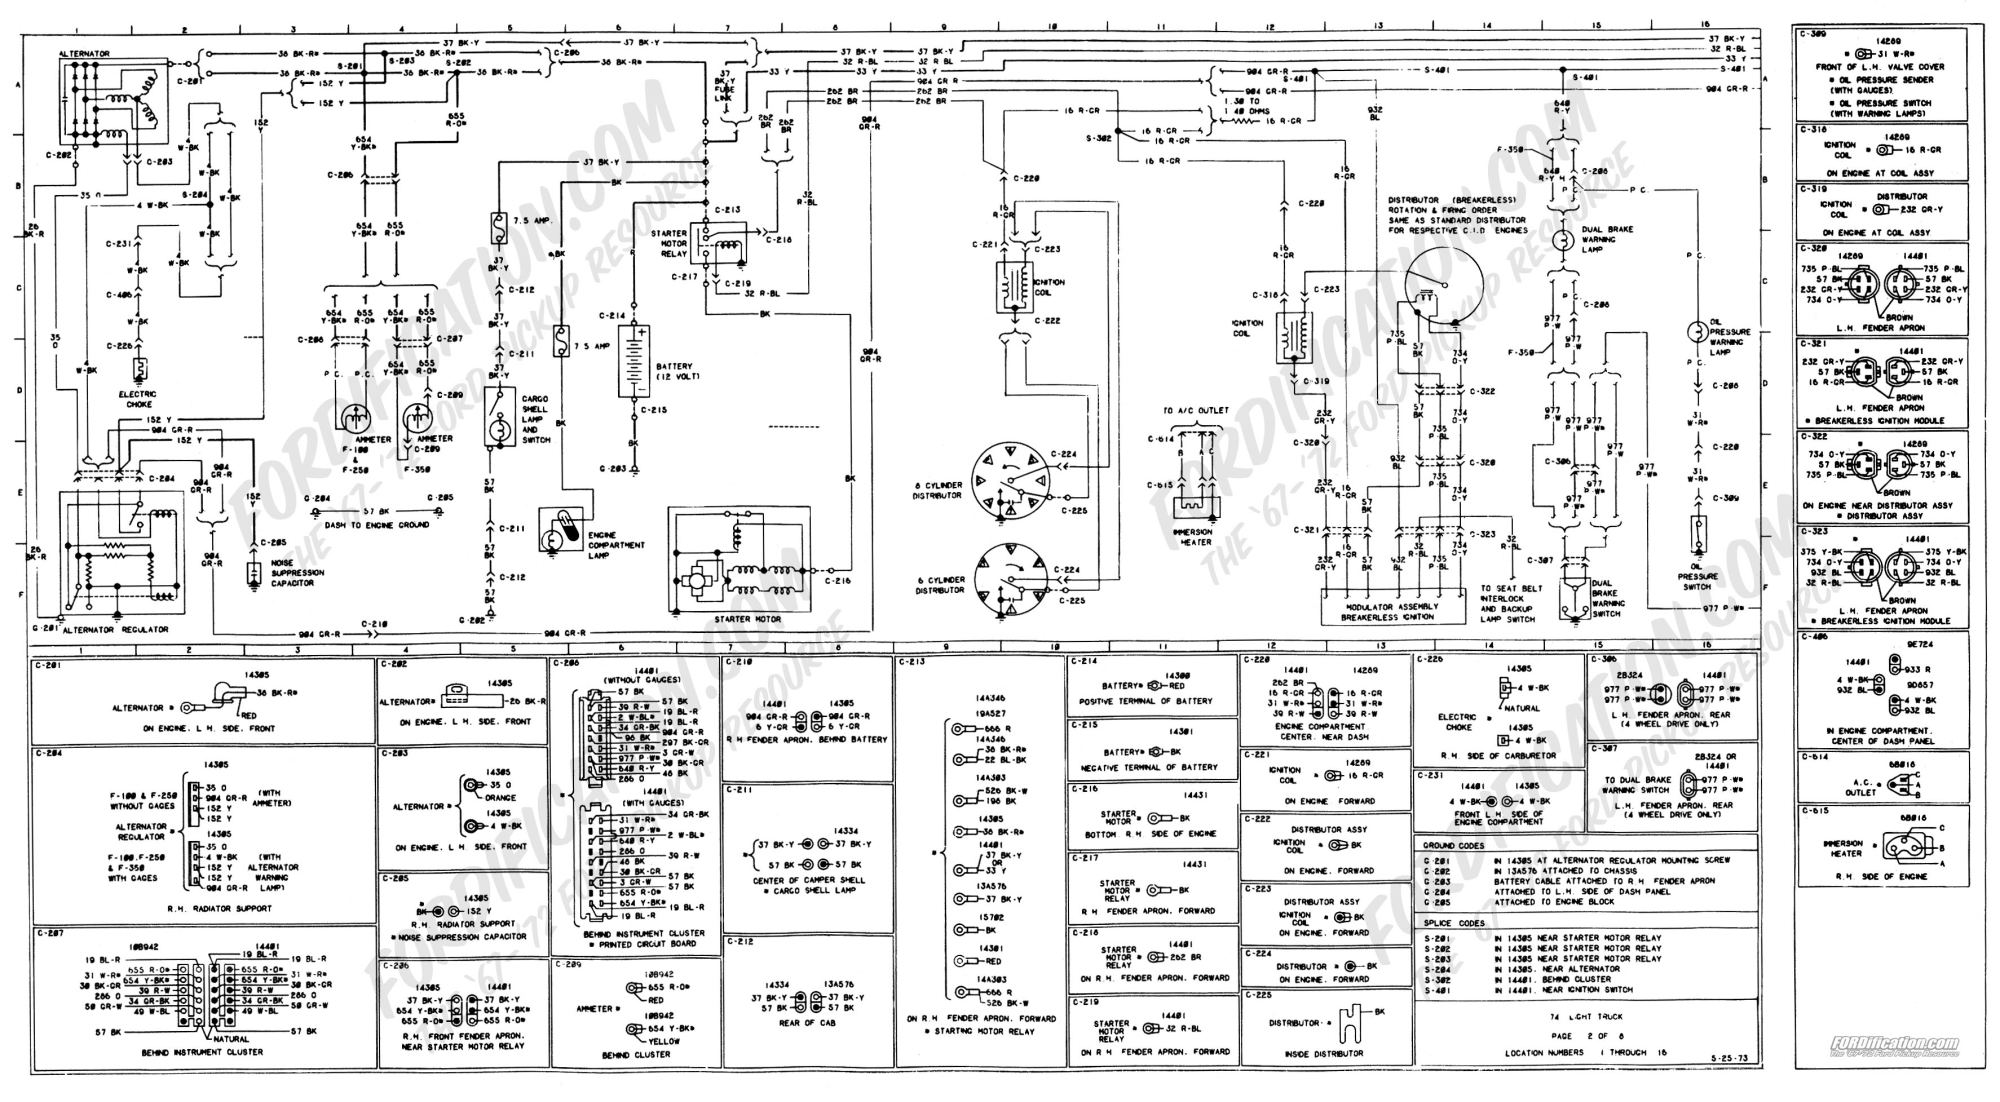 Ford Econoline E 250 Fuse Box Diagram 2012 Wiring Library 2000 E350 Cargo Van Hight Resolution Of Truck Trusted U2022 2008